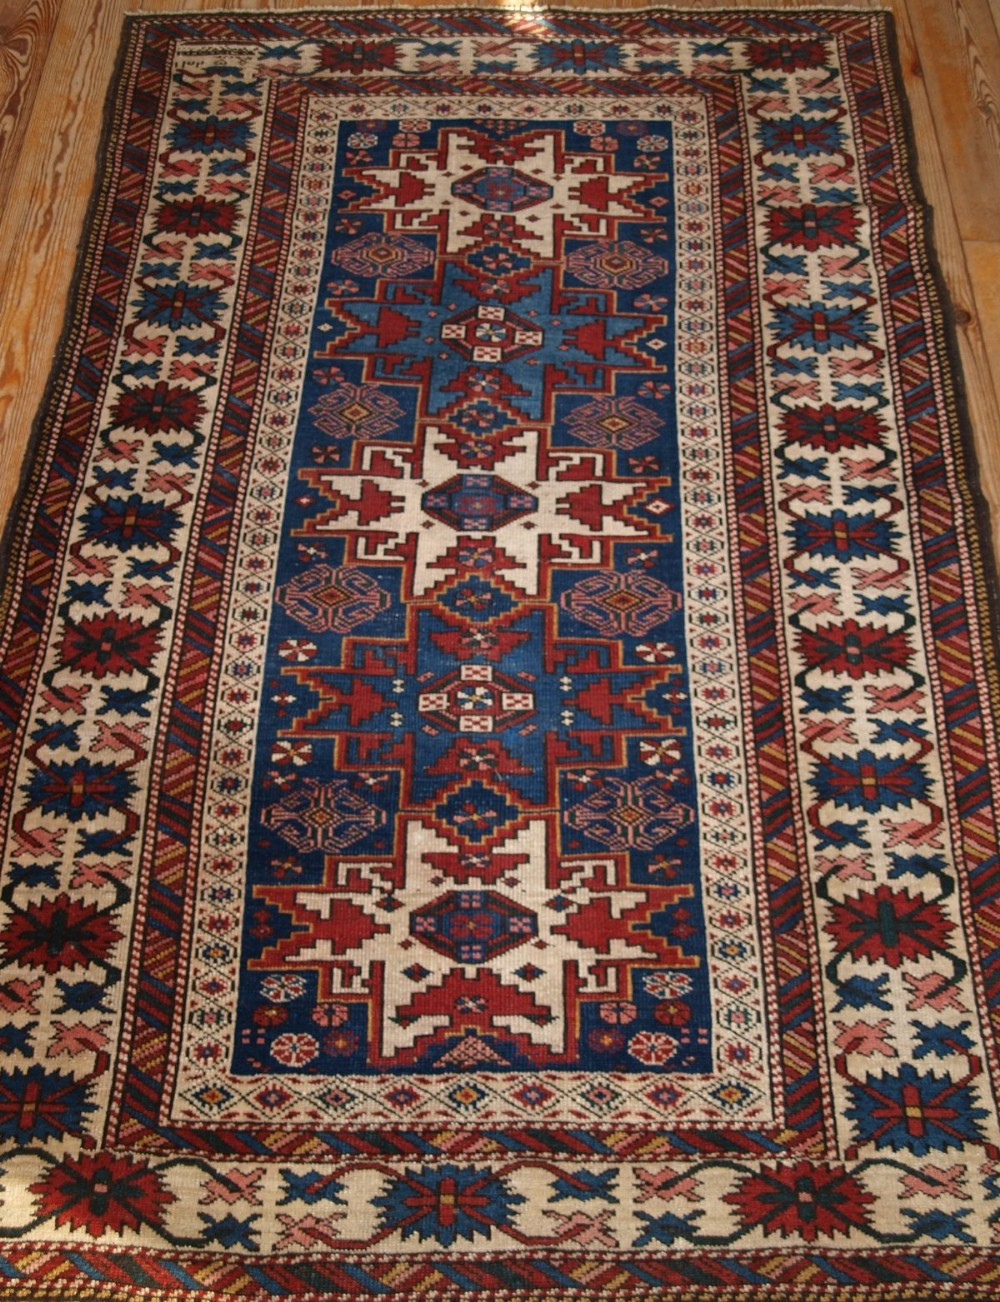 antique caucasian rug with lesghi star design dated 1325 circa 1900